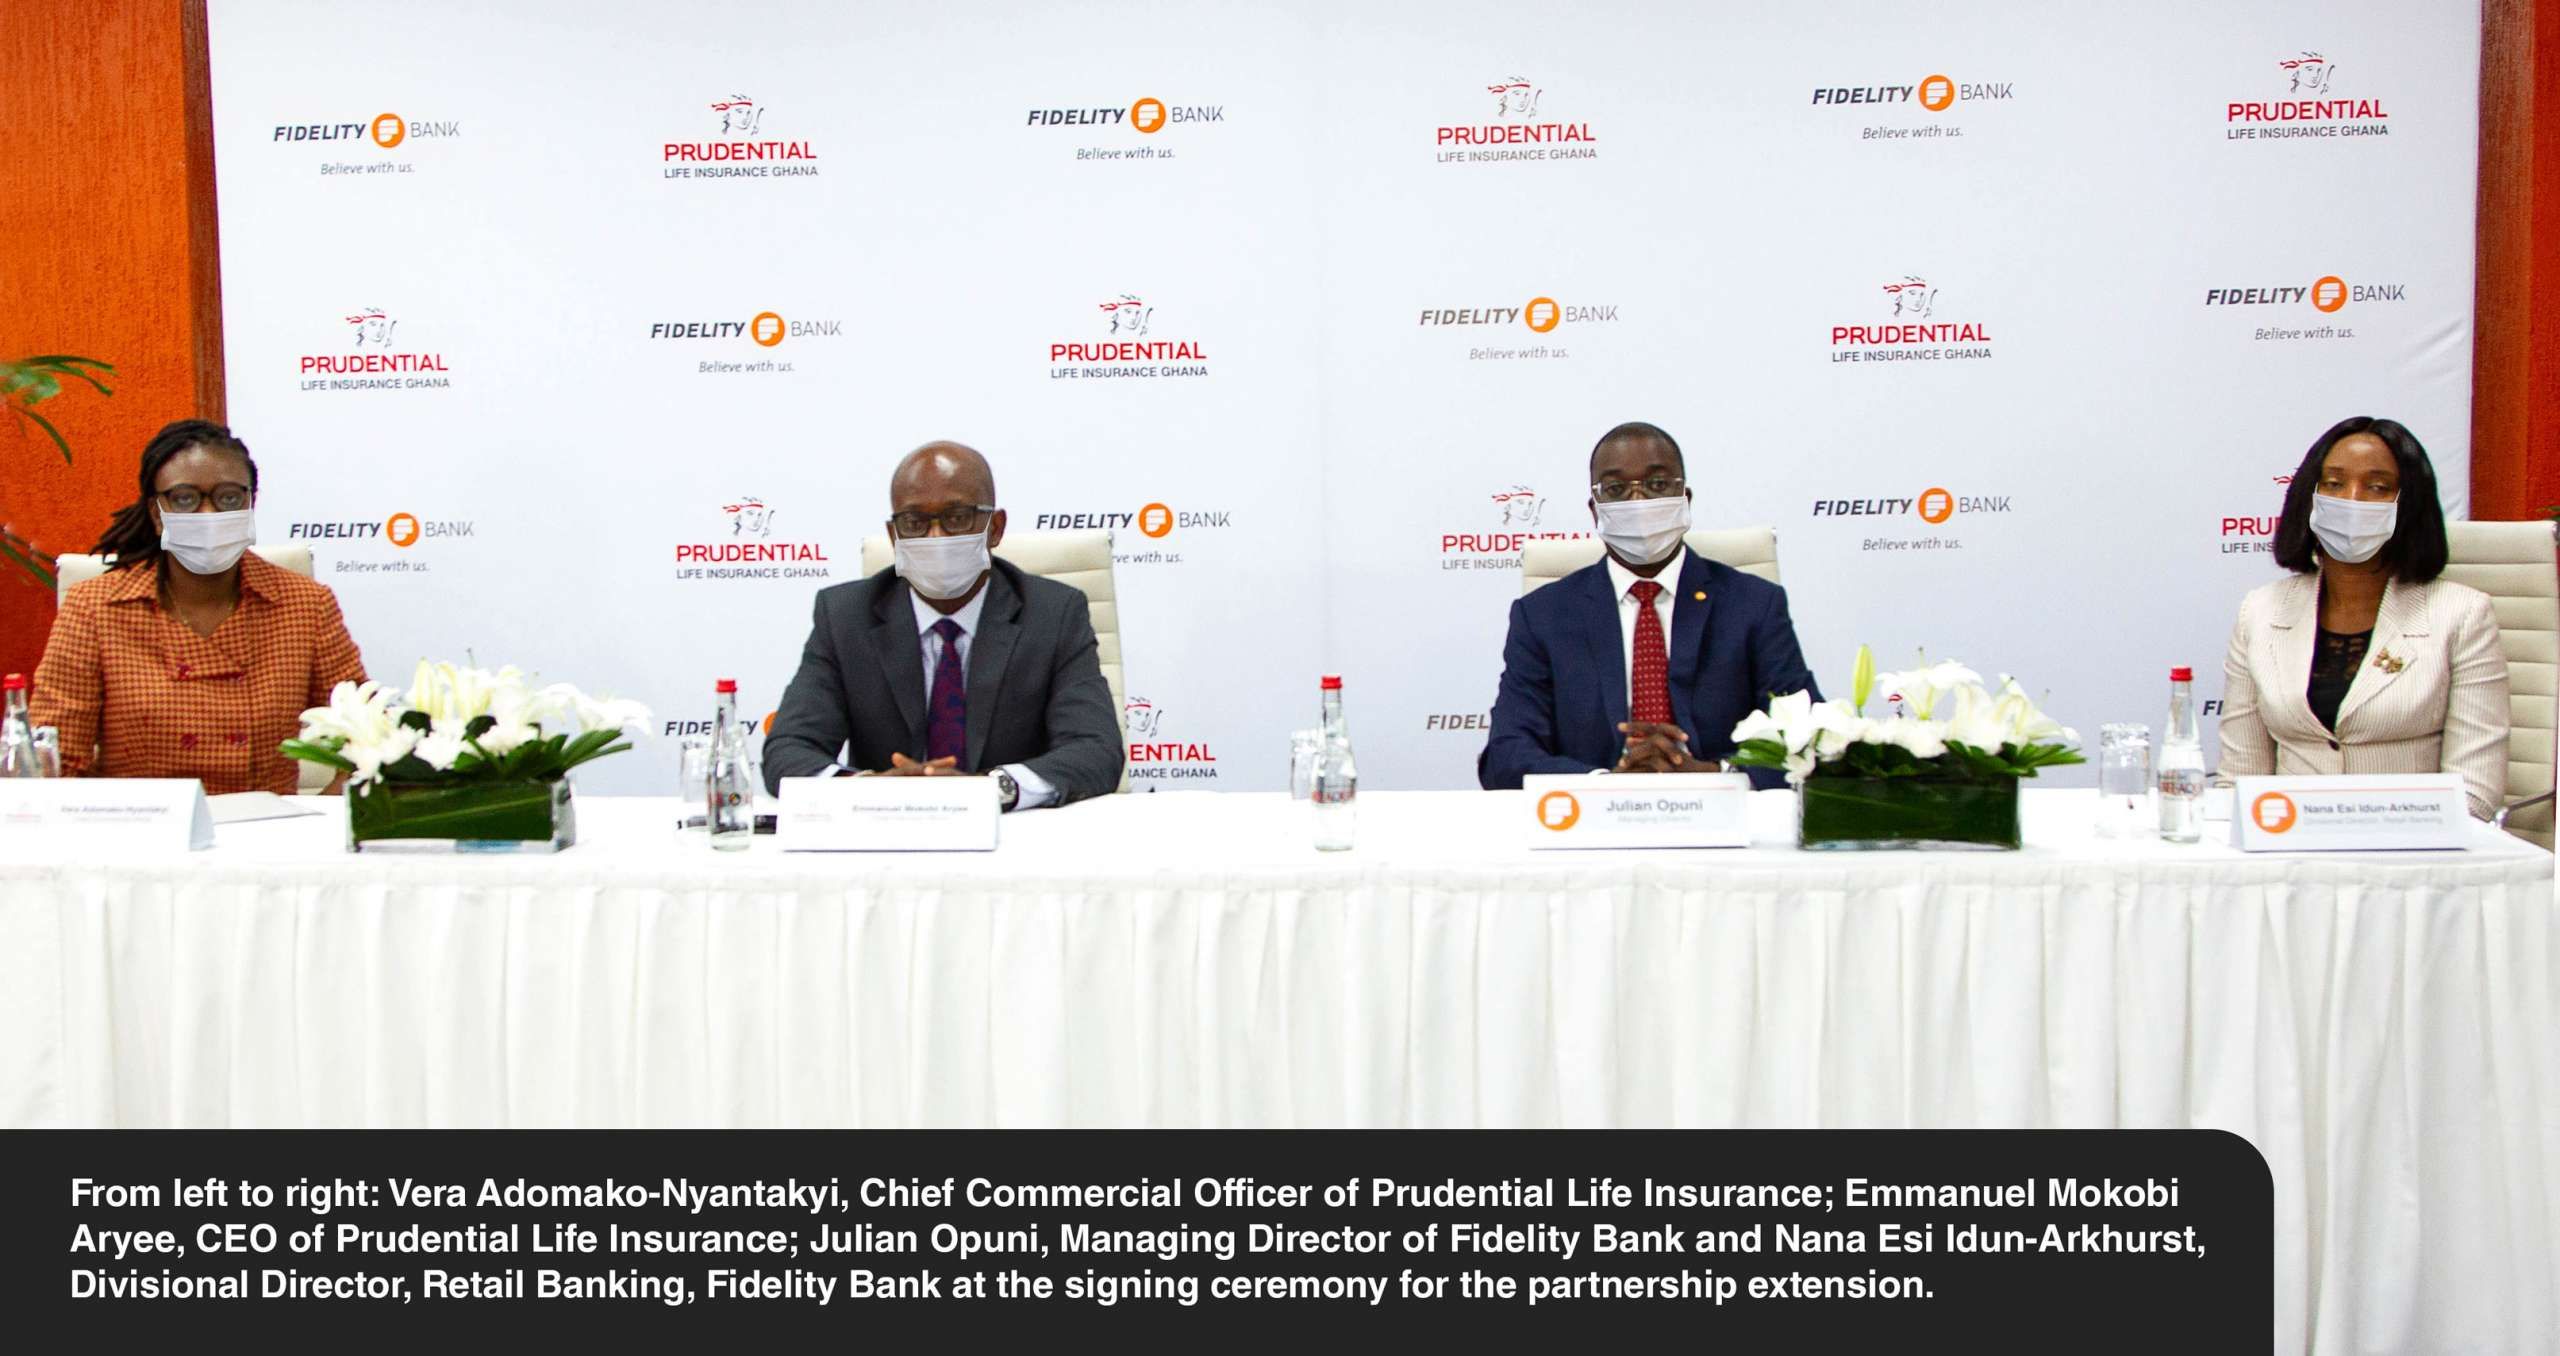 Prudential Life Insurance and Fidelity Bank to extend bancassurance deal by 10 years